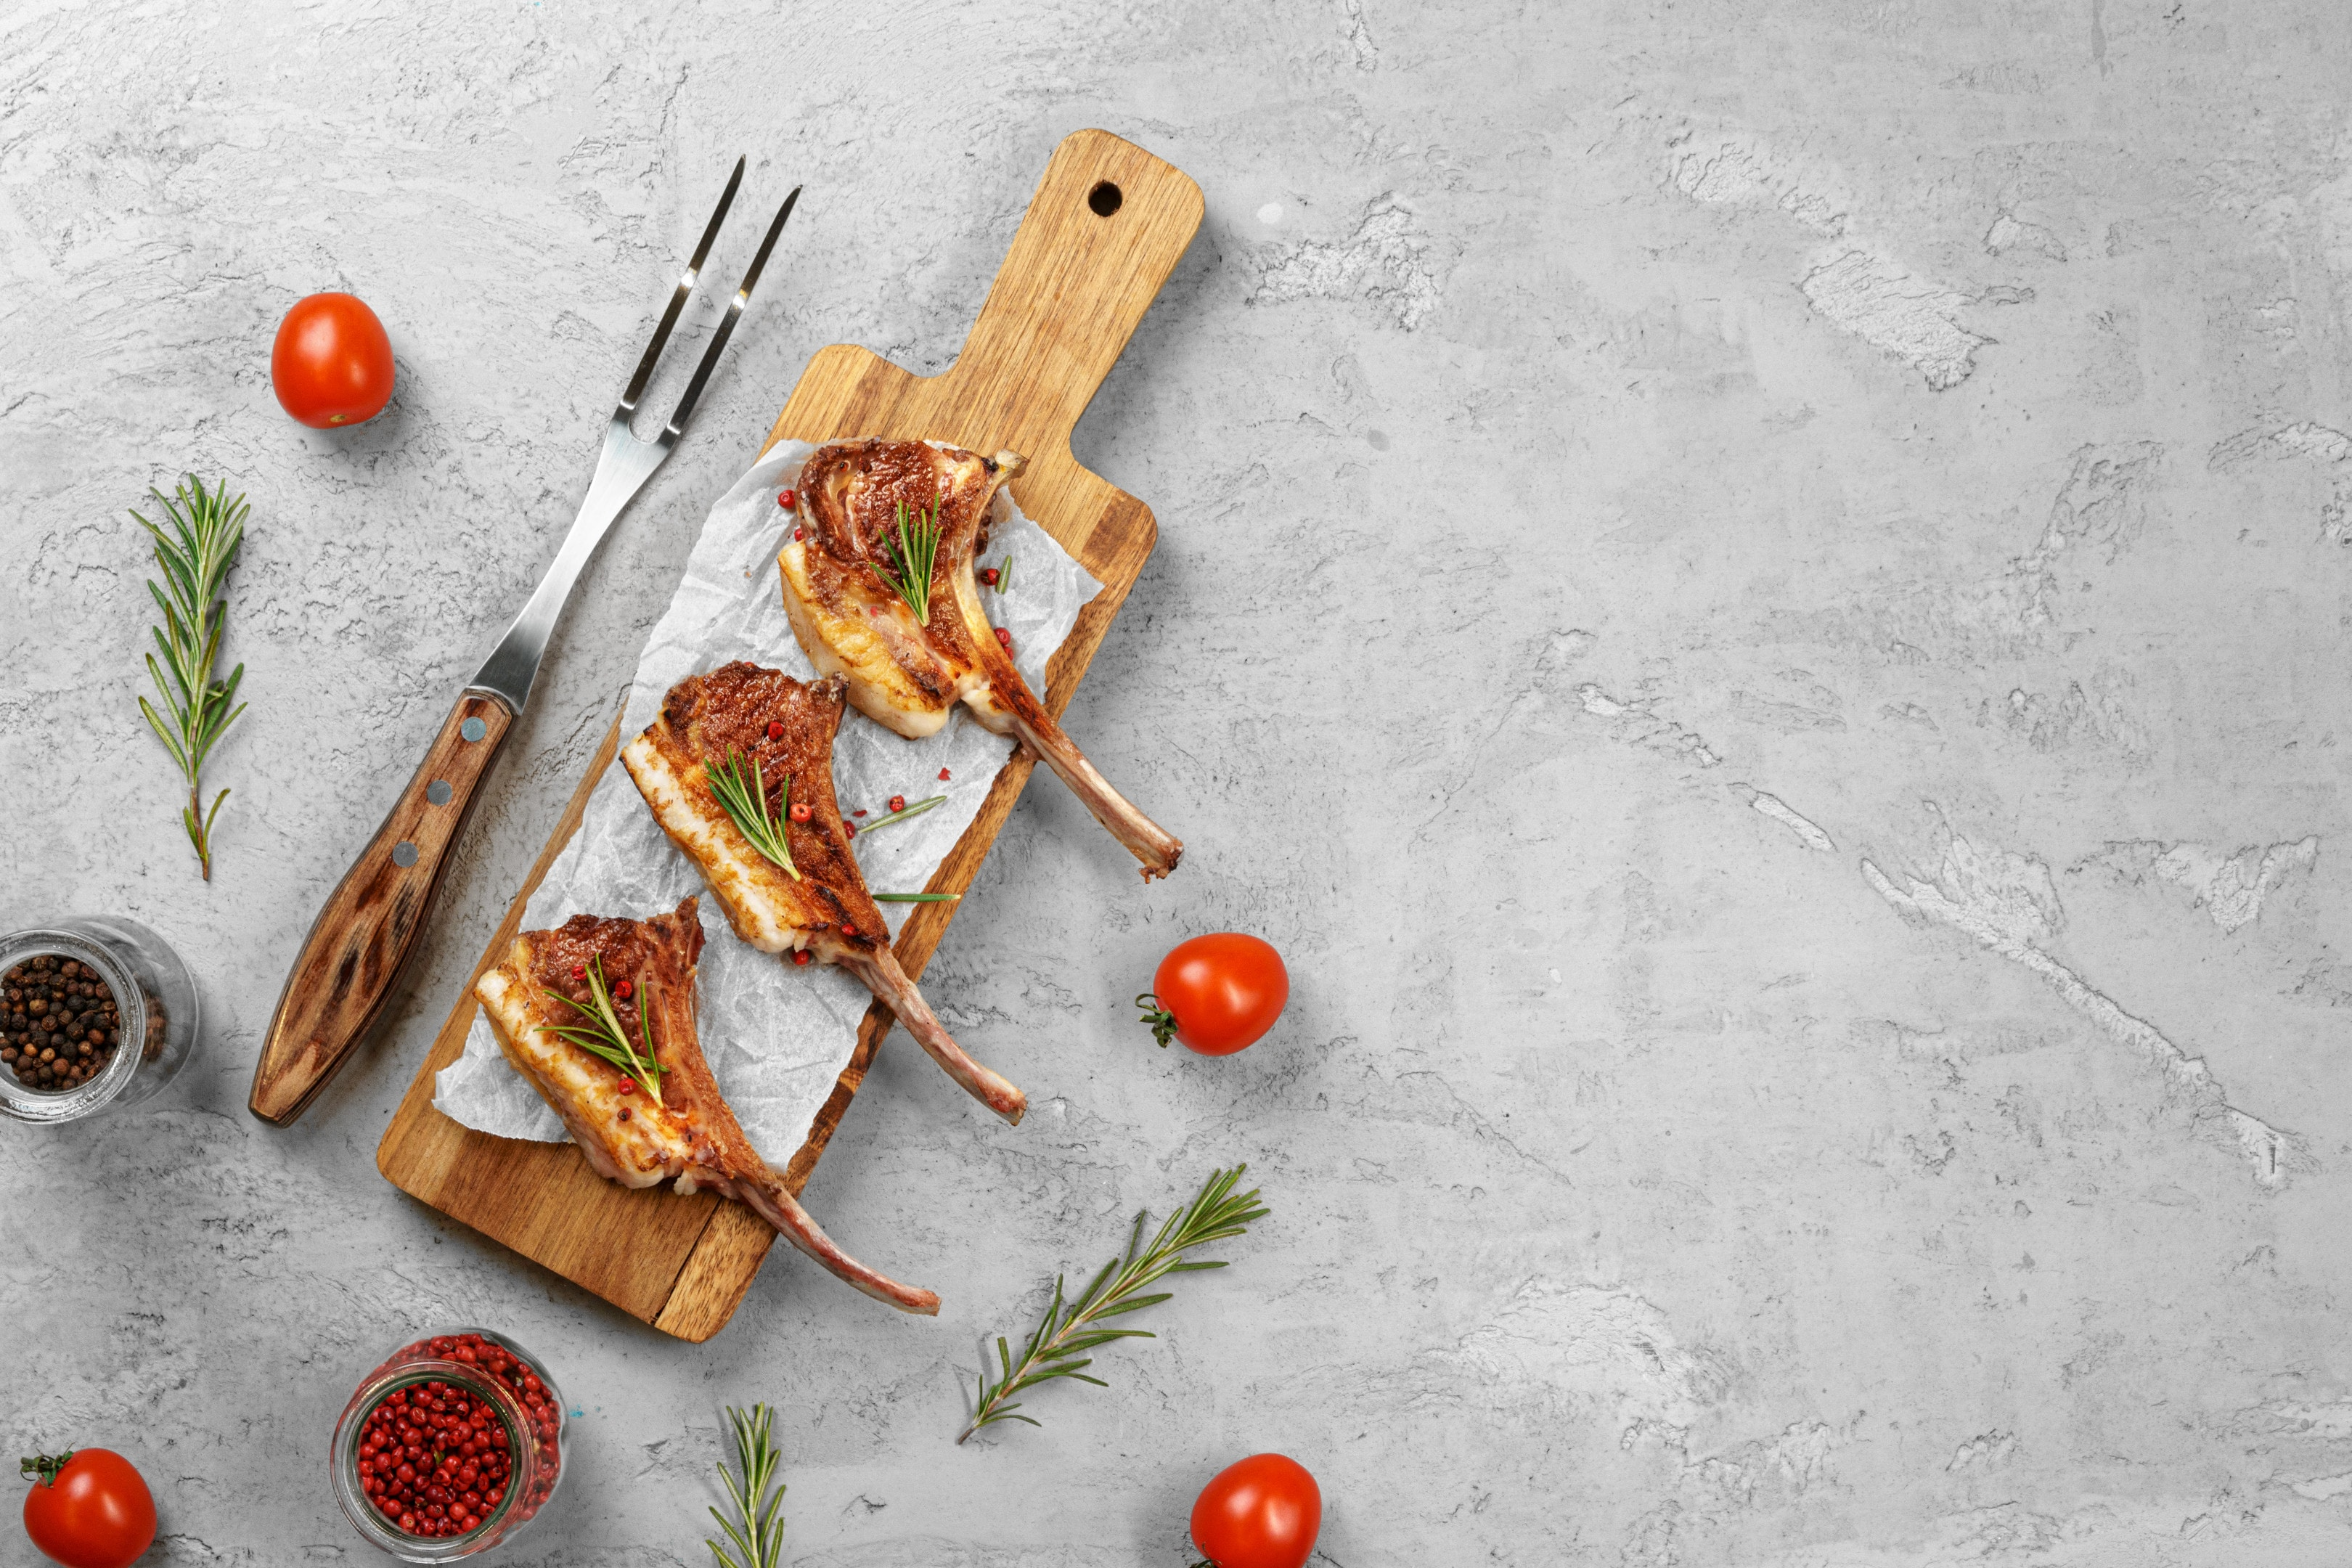 Grilled rack of lamb served on wooden board